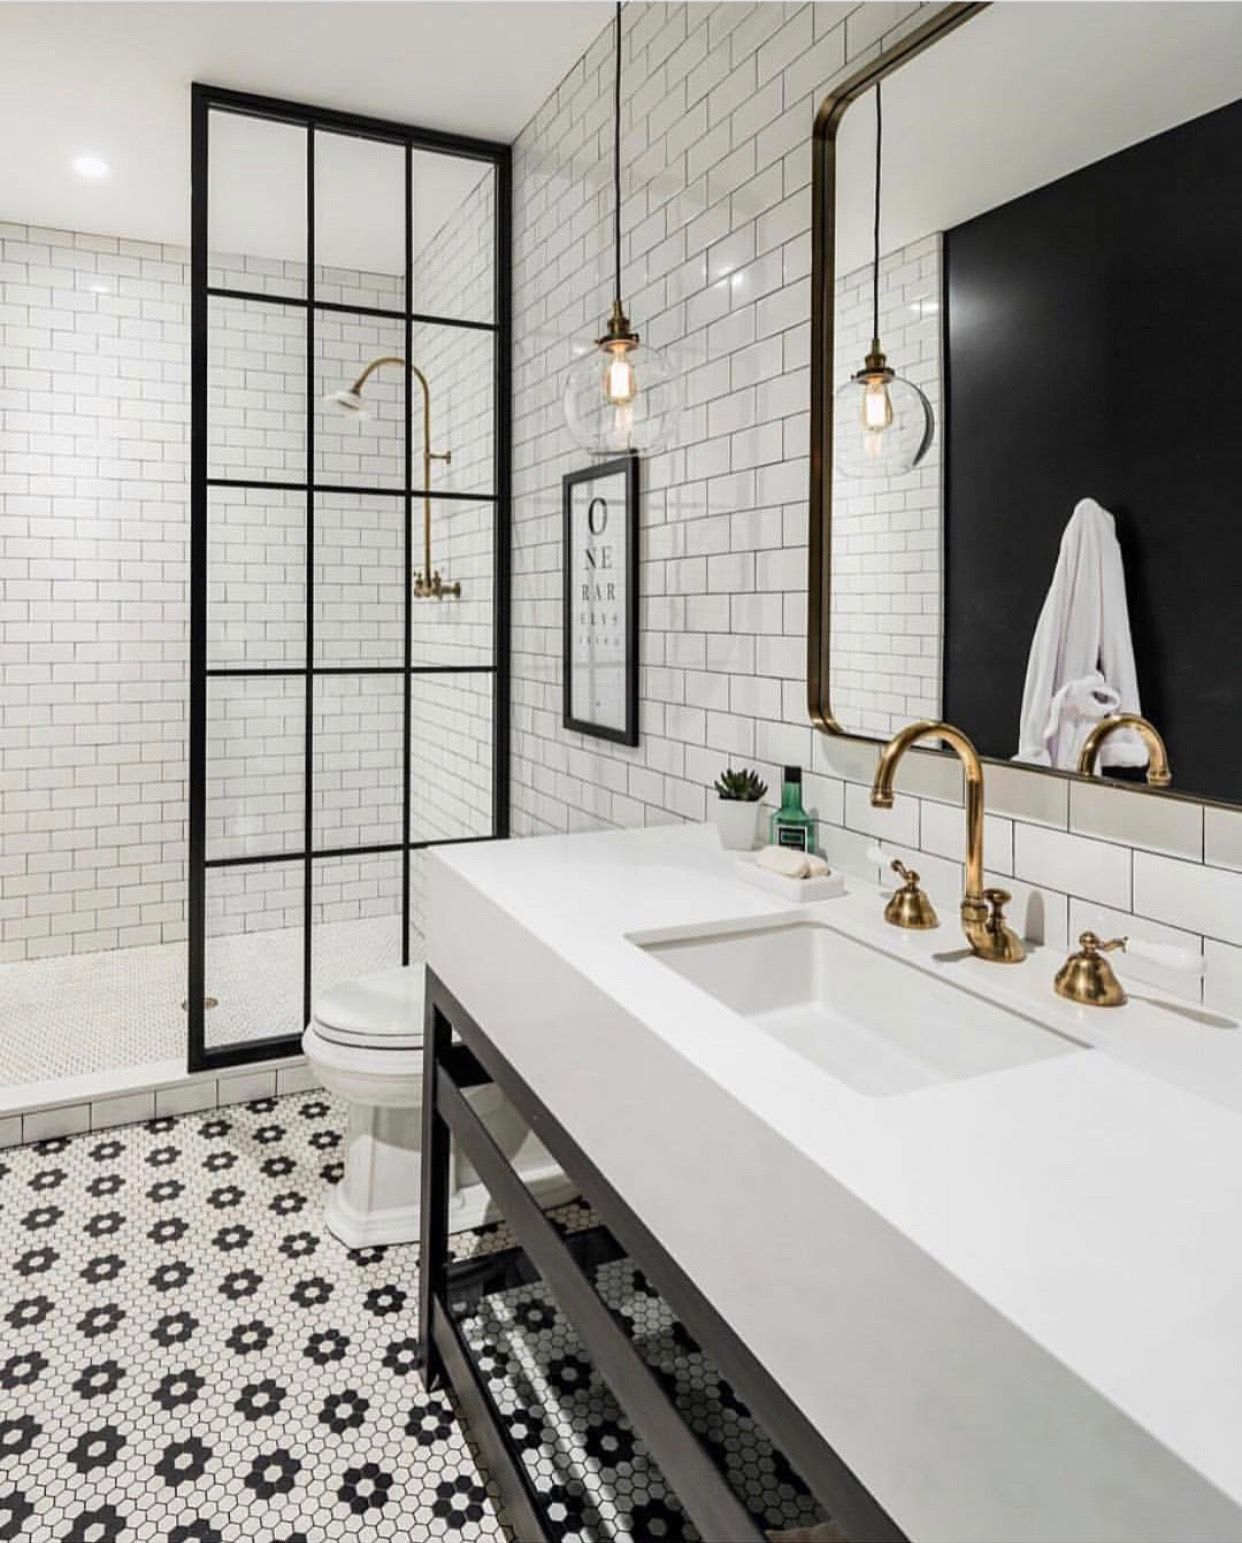 Black And White Bathroom With Classic And Modern Finishes Brass Fixtures Glass P White Bathroom Designs Modern Farmhouse Bathroom White Subway Tile Bathroom